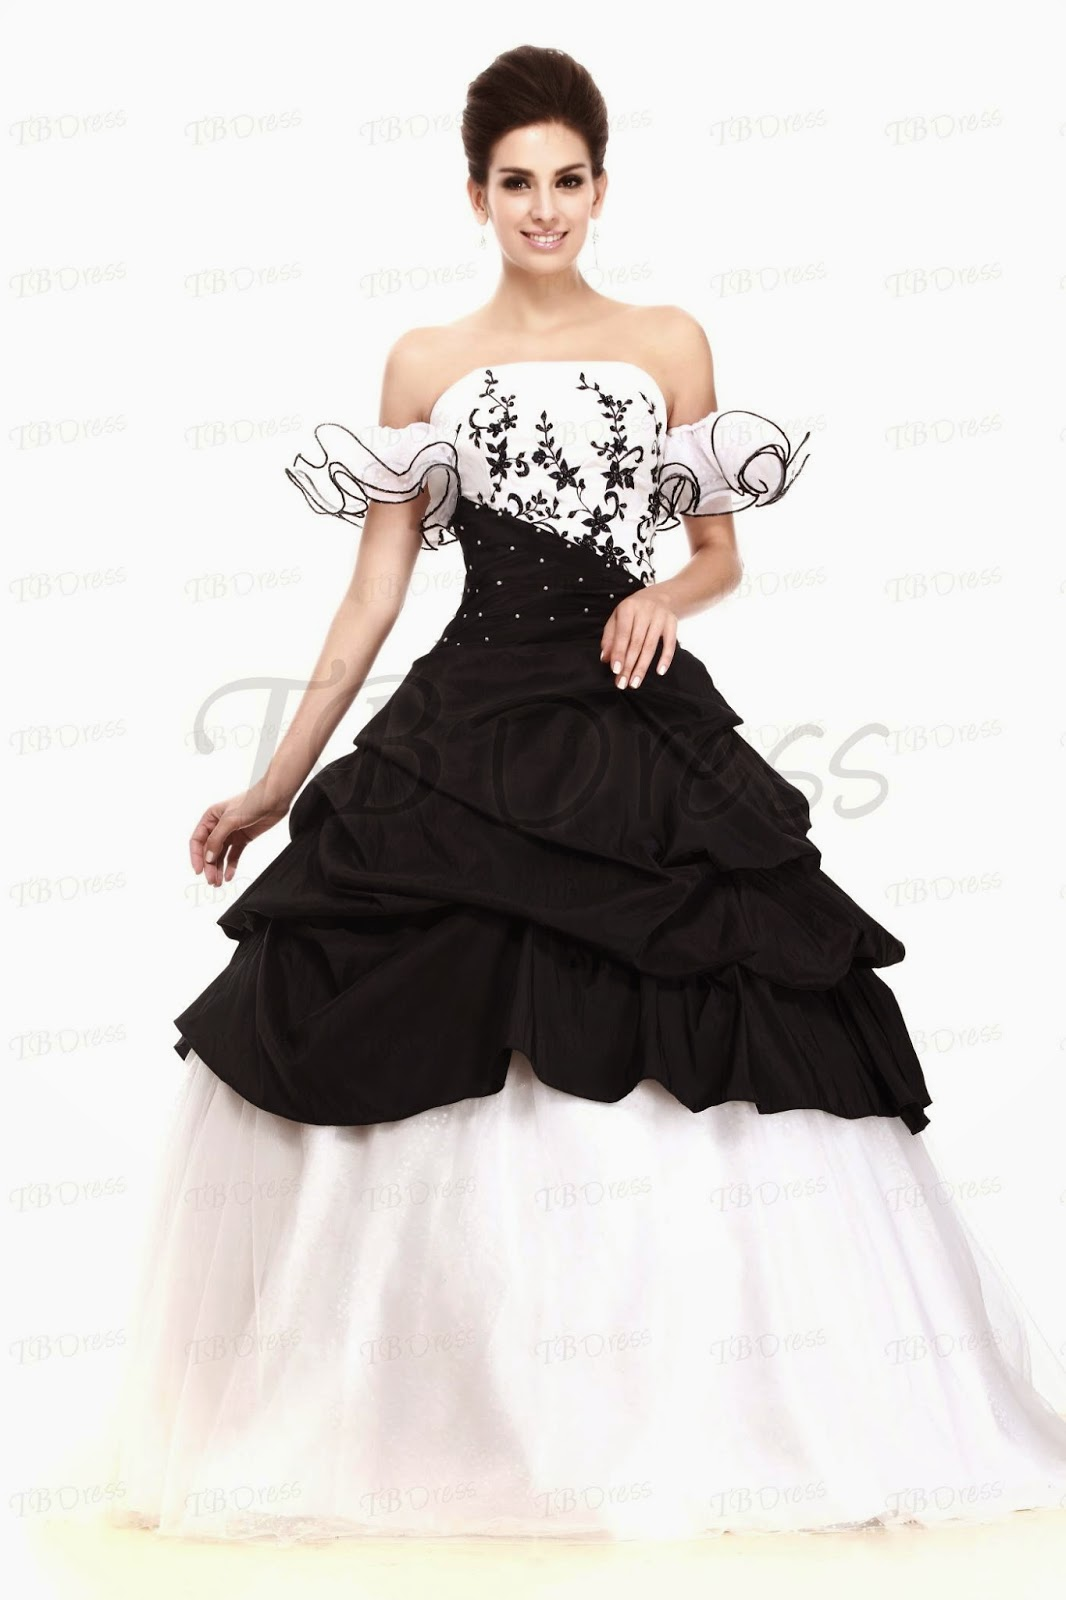 http://www.tbdress.com/product/Elegant-Ball-Gown-Strapless-Shawl-Floor-Length-Talines-Quinceanera-Dress-9672433.html